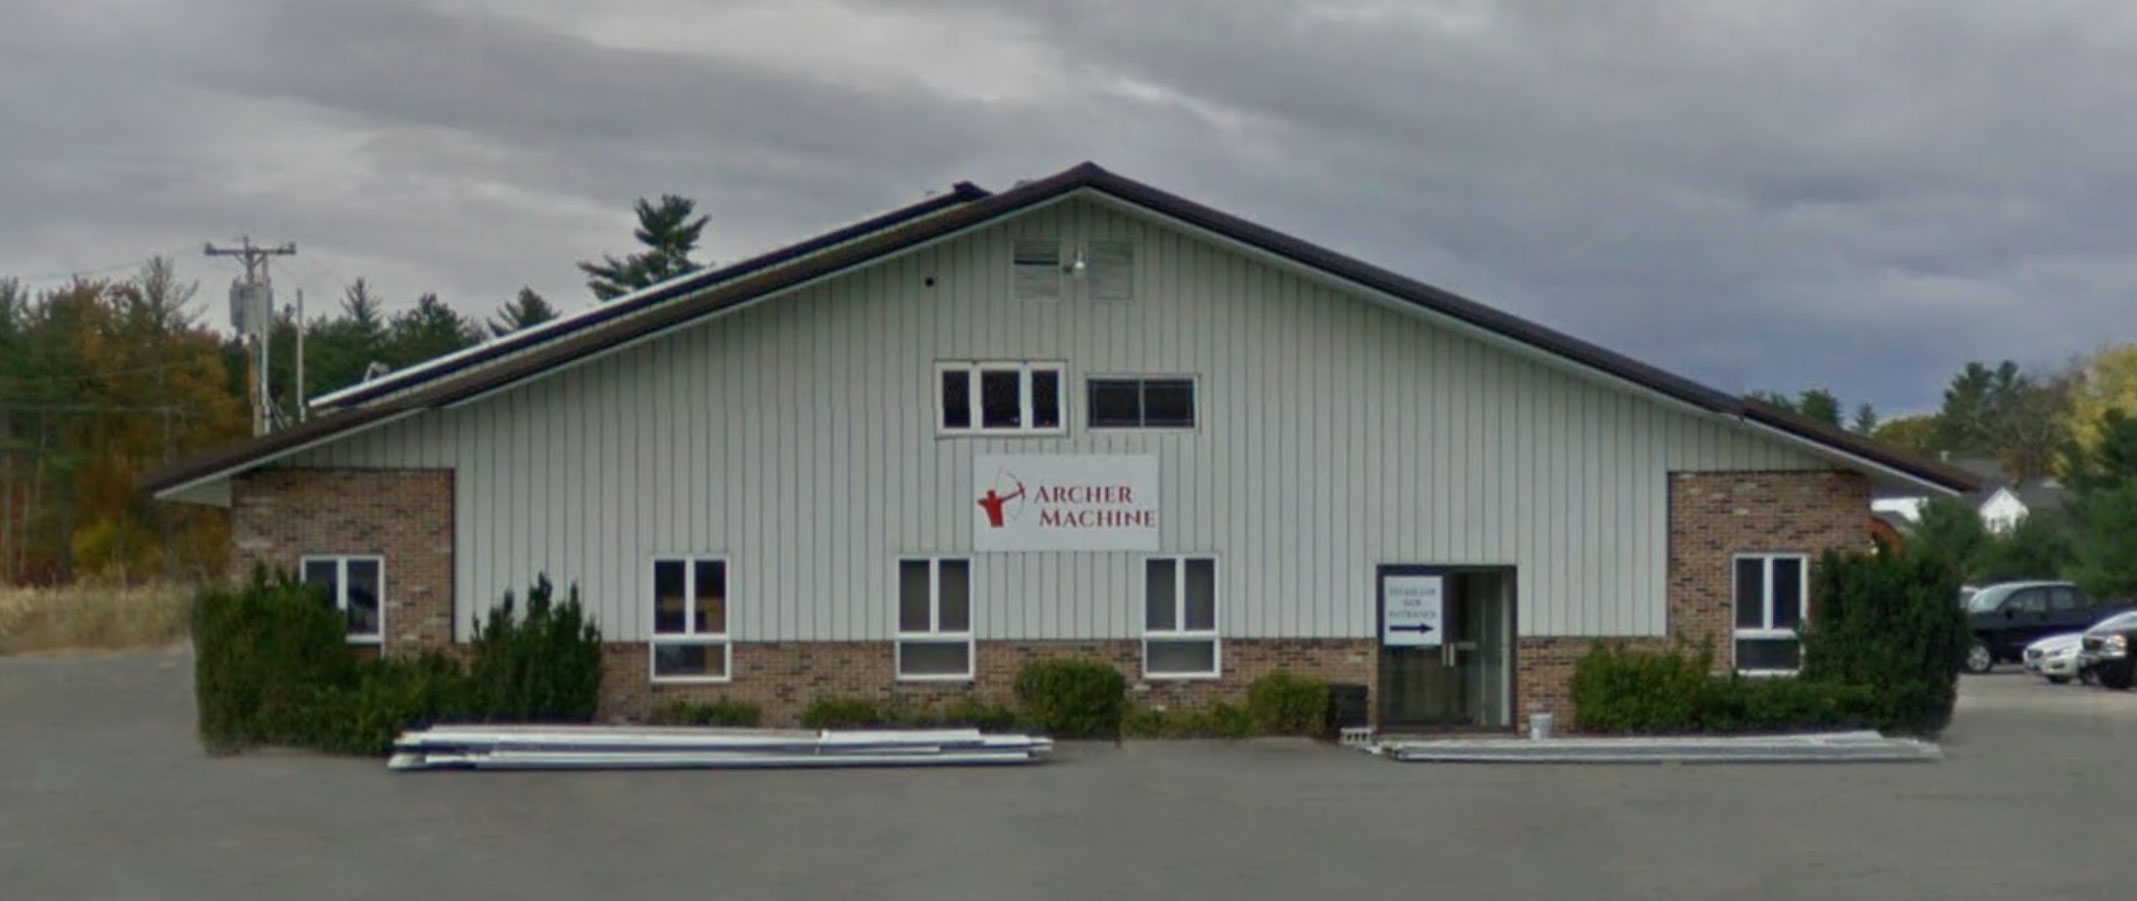 Contact Us - Archer Machine Shop in Maine